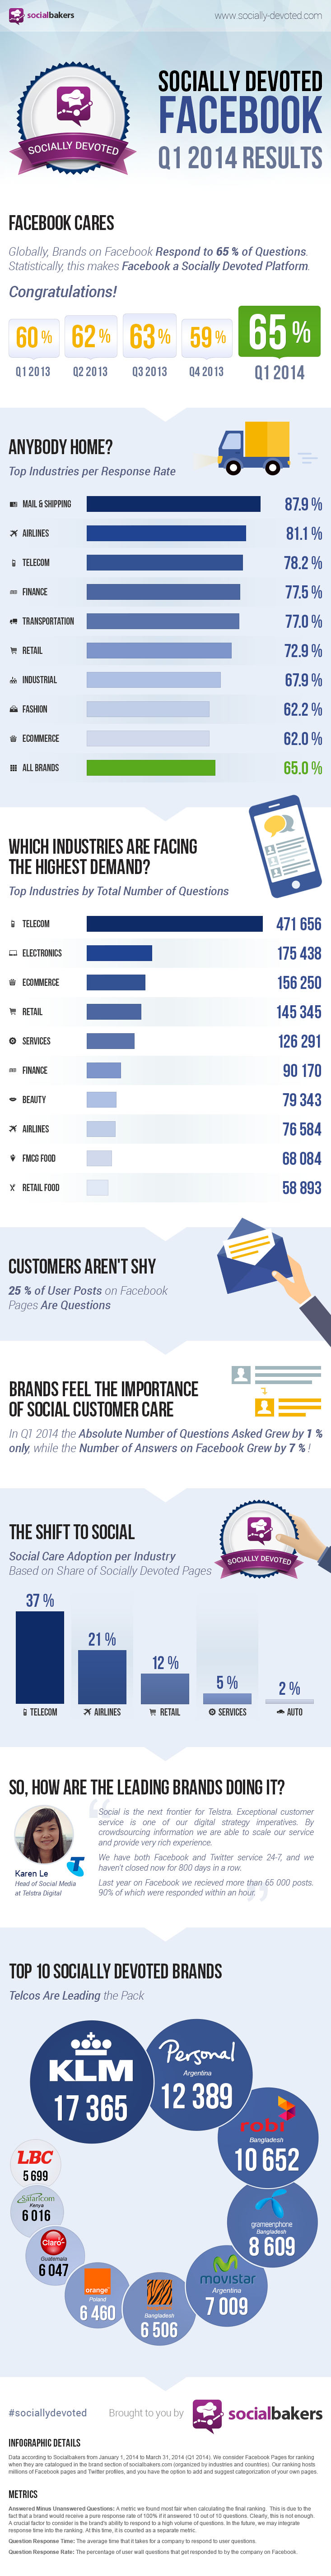 Socially Devoted #Facebook Q1 2014: Social Care Excellence on Facebook is Now the Standard - #infographic #socialmedia